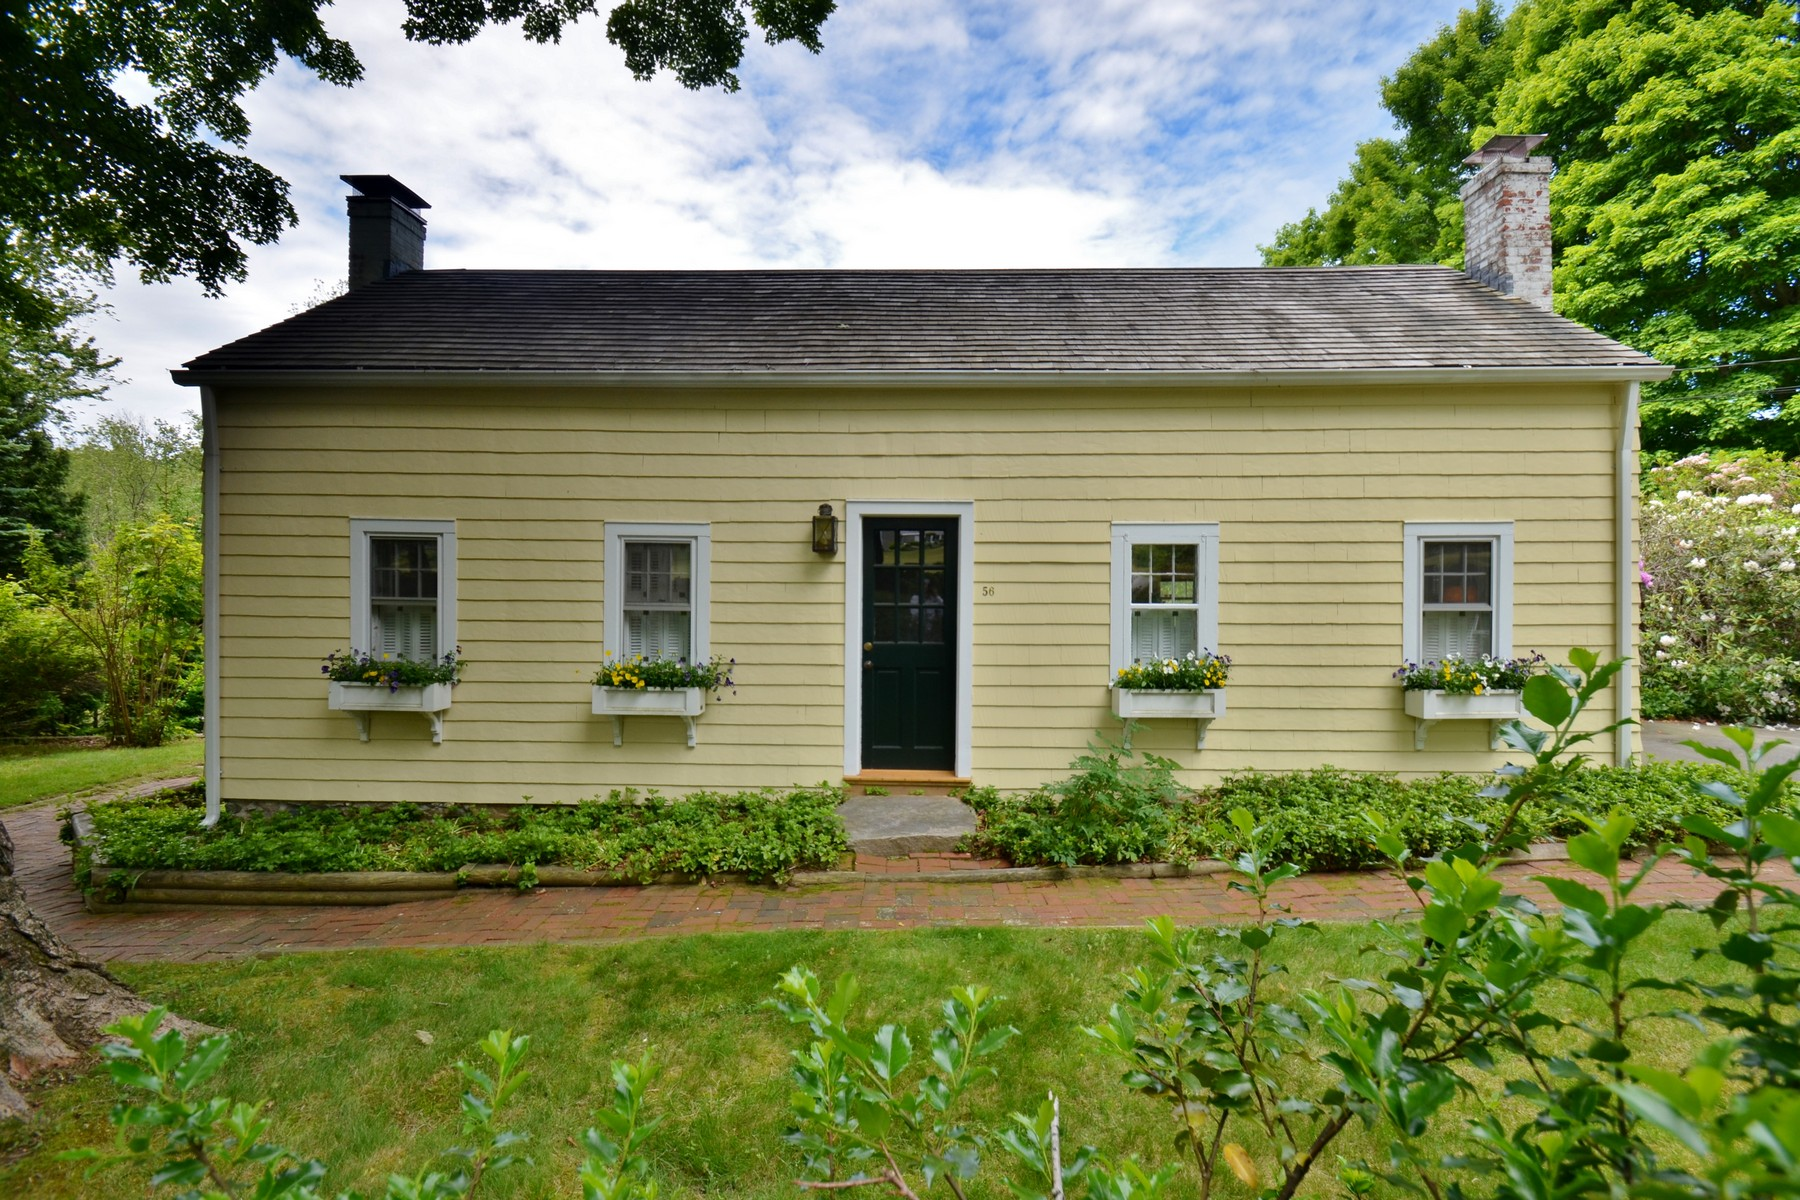 Single Family Home for Sale at Cape Abounds with Character & Charm 56 Sill Ln Old Lyme, Connecticut 06371 United States